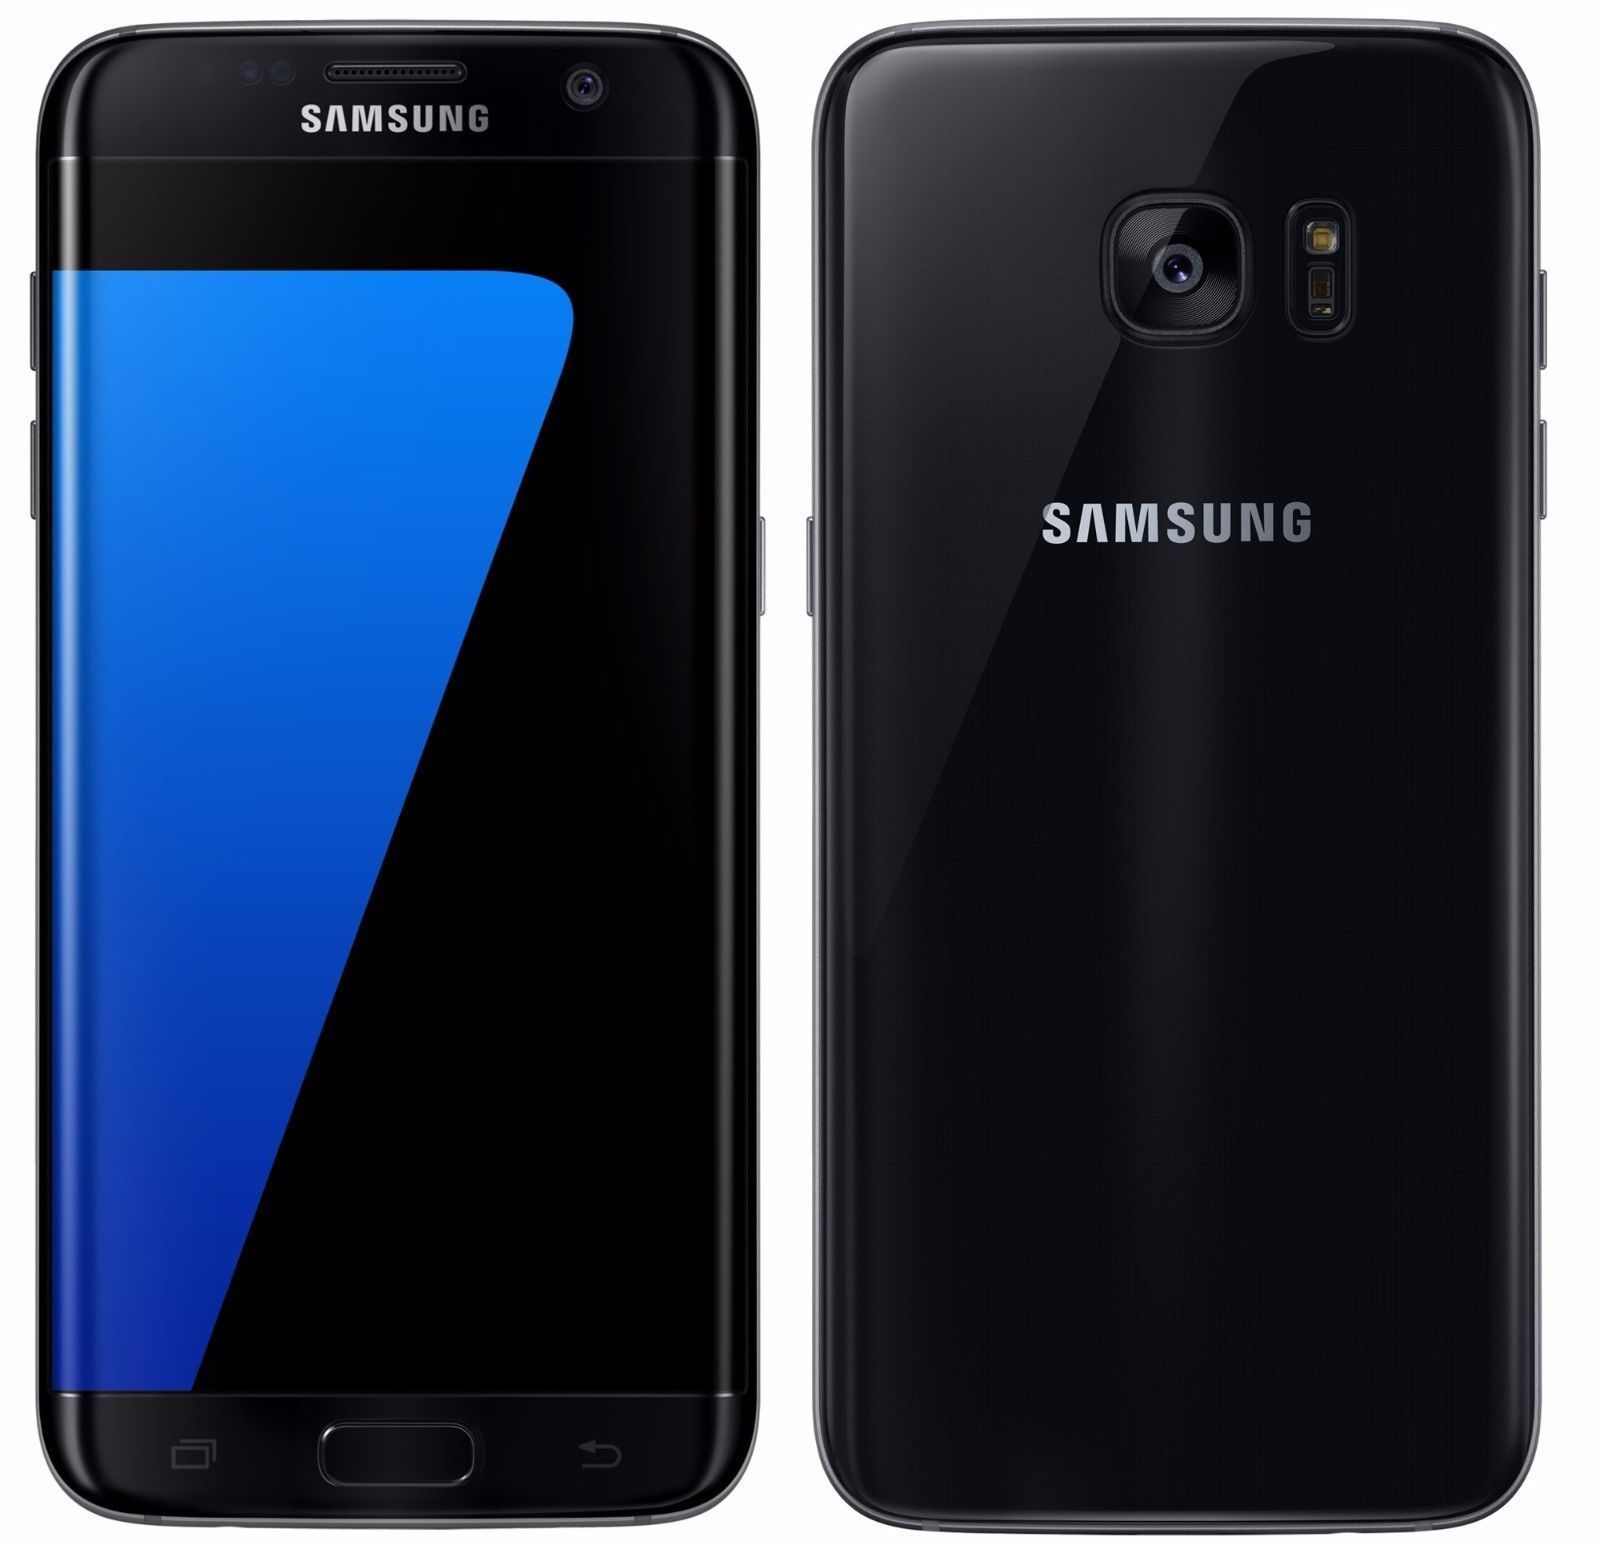 7s model samsung Samsung galaxy s7 edge review samsung's latest curved wonder is super-stylish, super-powered and simply all-round super.